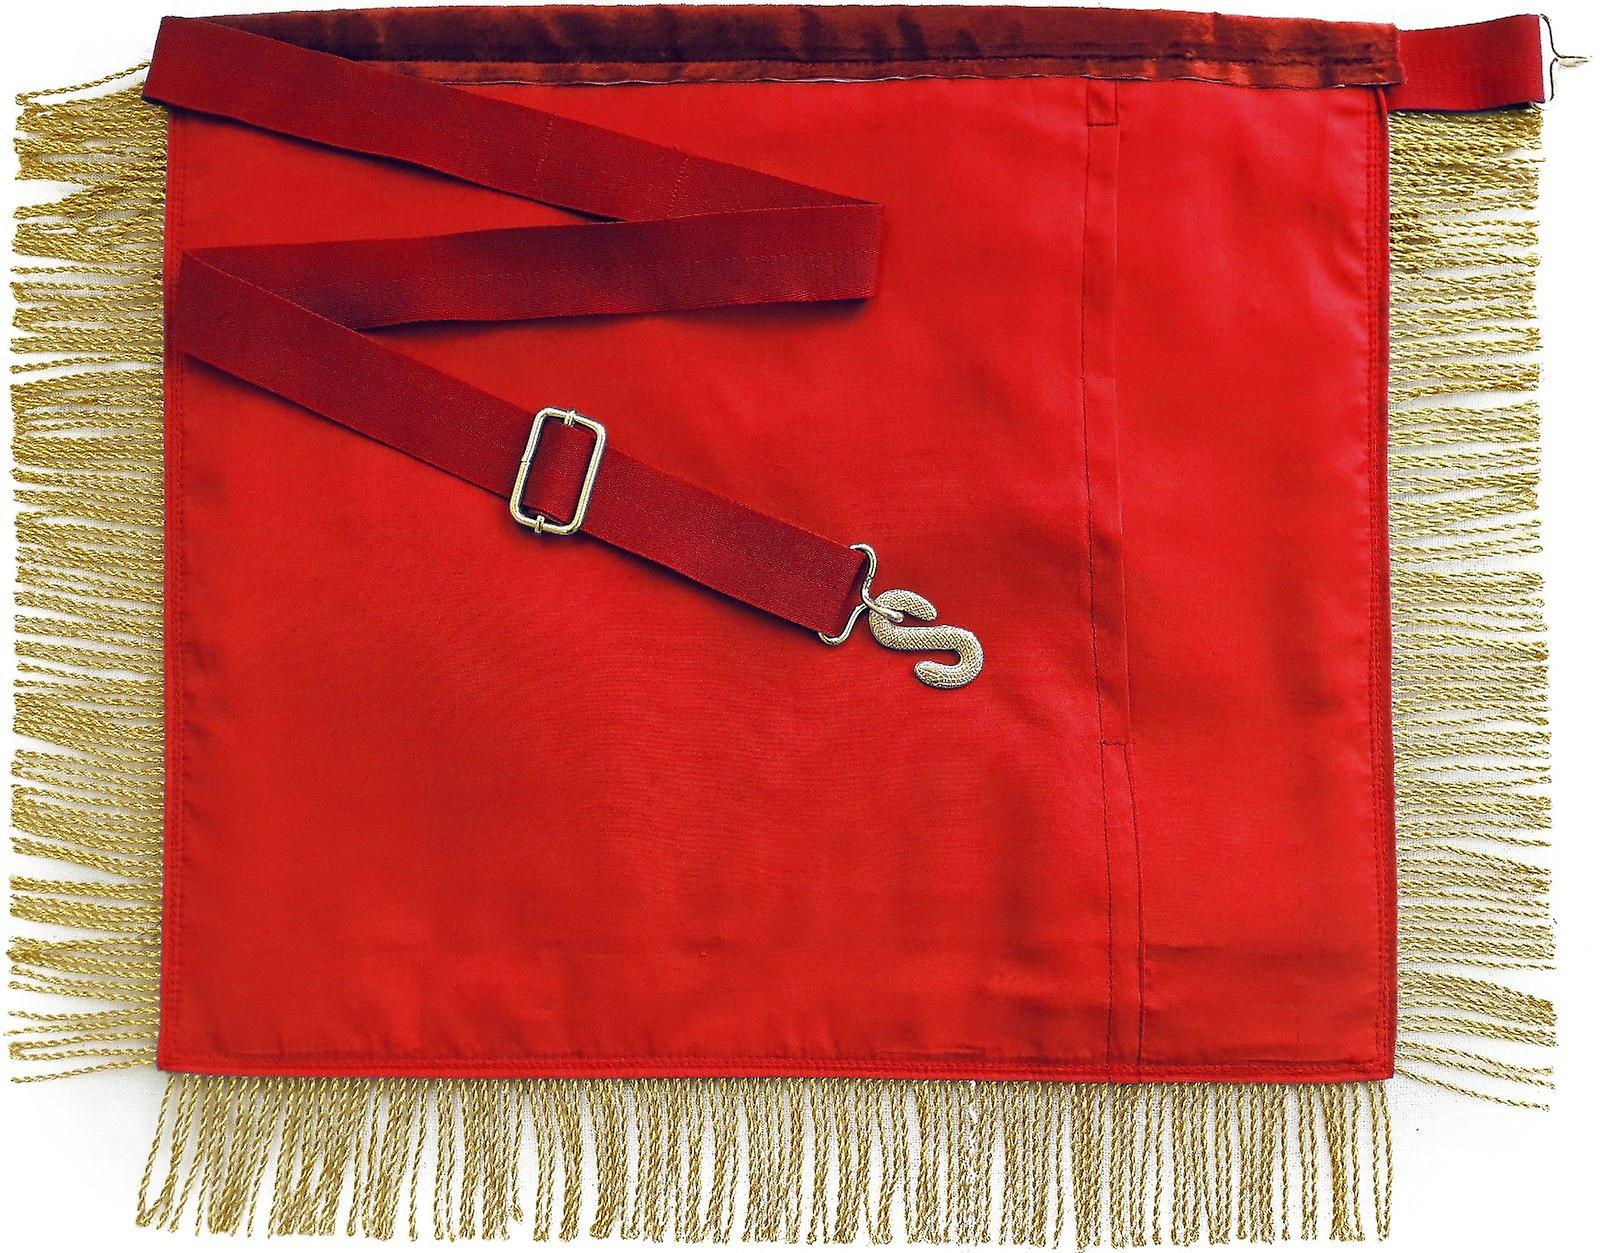 Masonic Royal Arch Past High Priest Apron PHP with Fringe Hand Embroidered